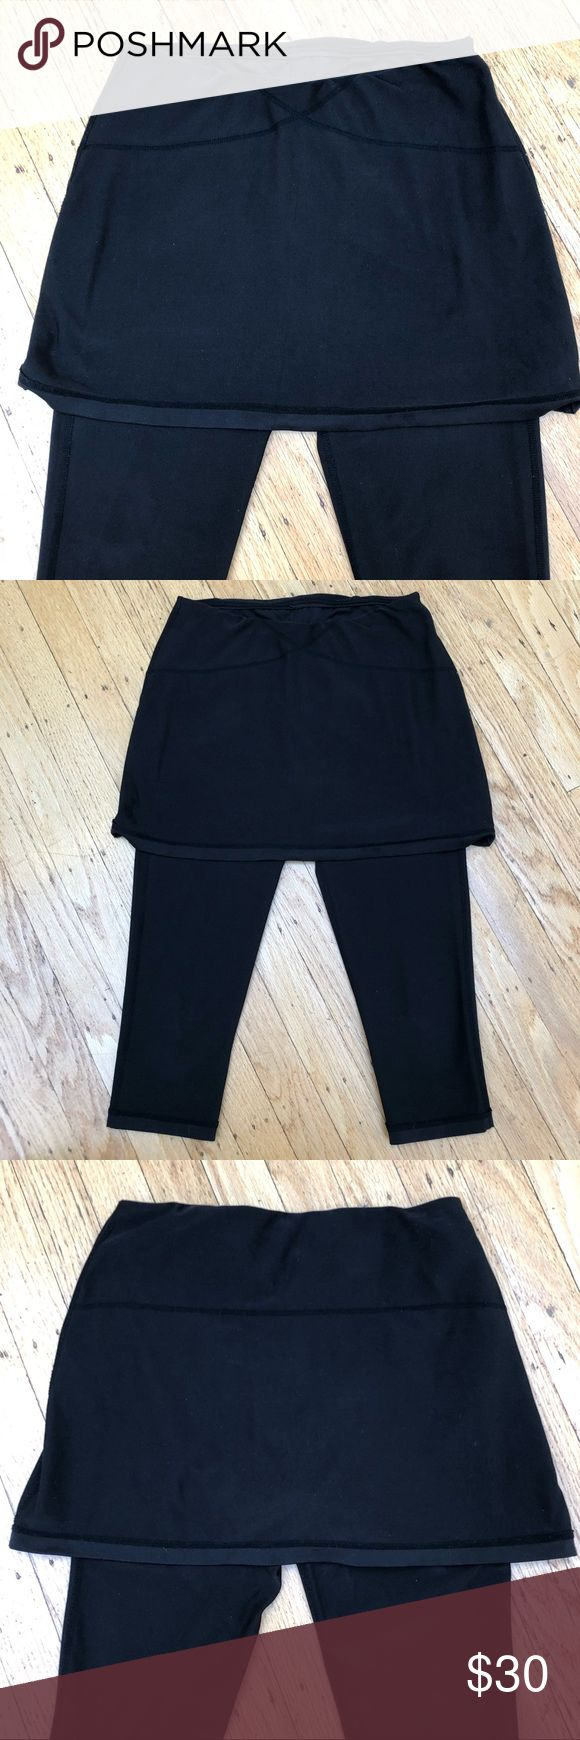 Athleta Capri legging with built in skirt XS Black Capri leggings with small pocket on inside perfect for tennis on a cold day or going to the gym! Excellent condition. Athleta Pants Capris